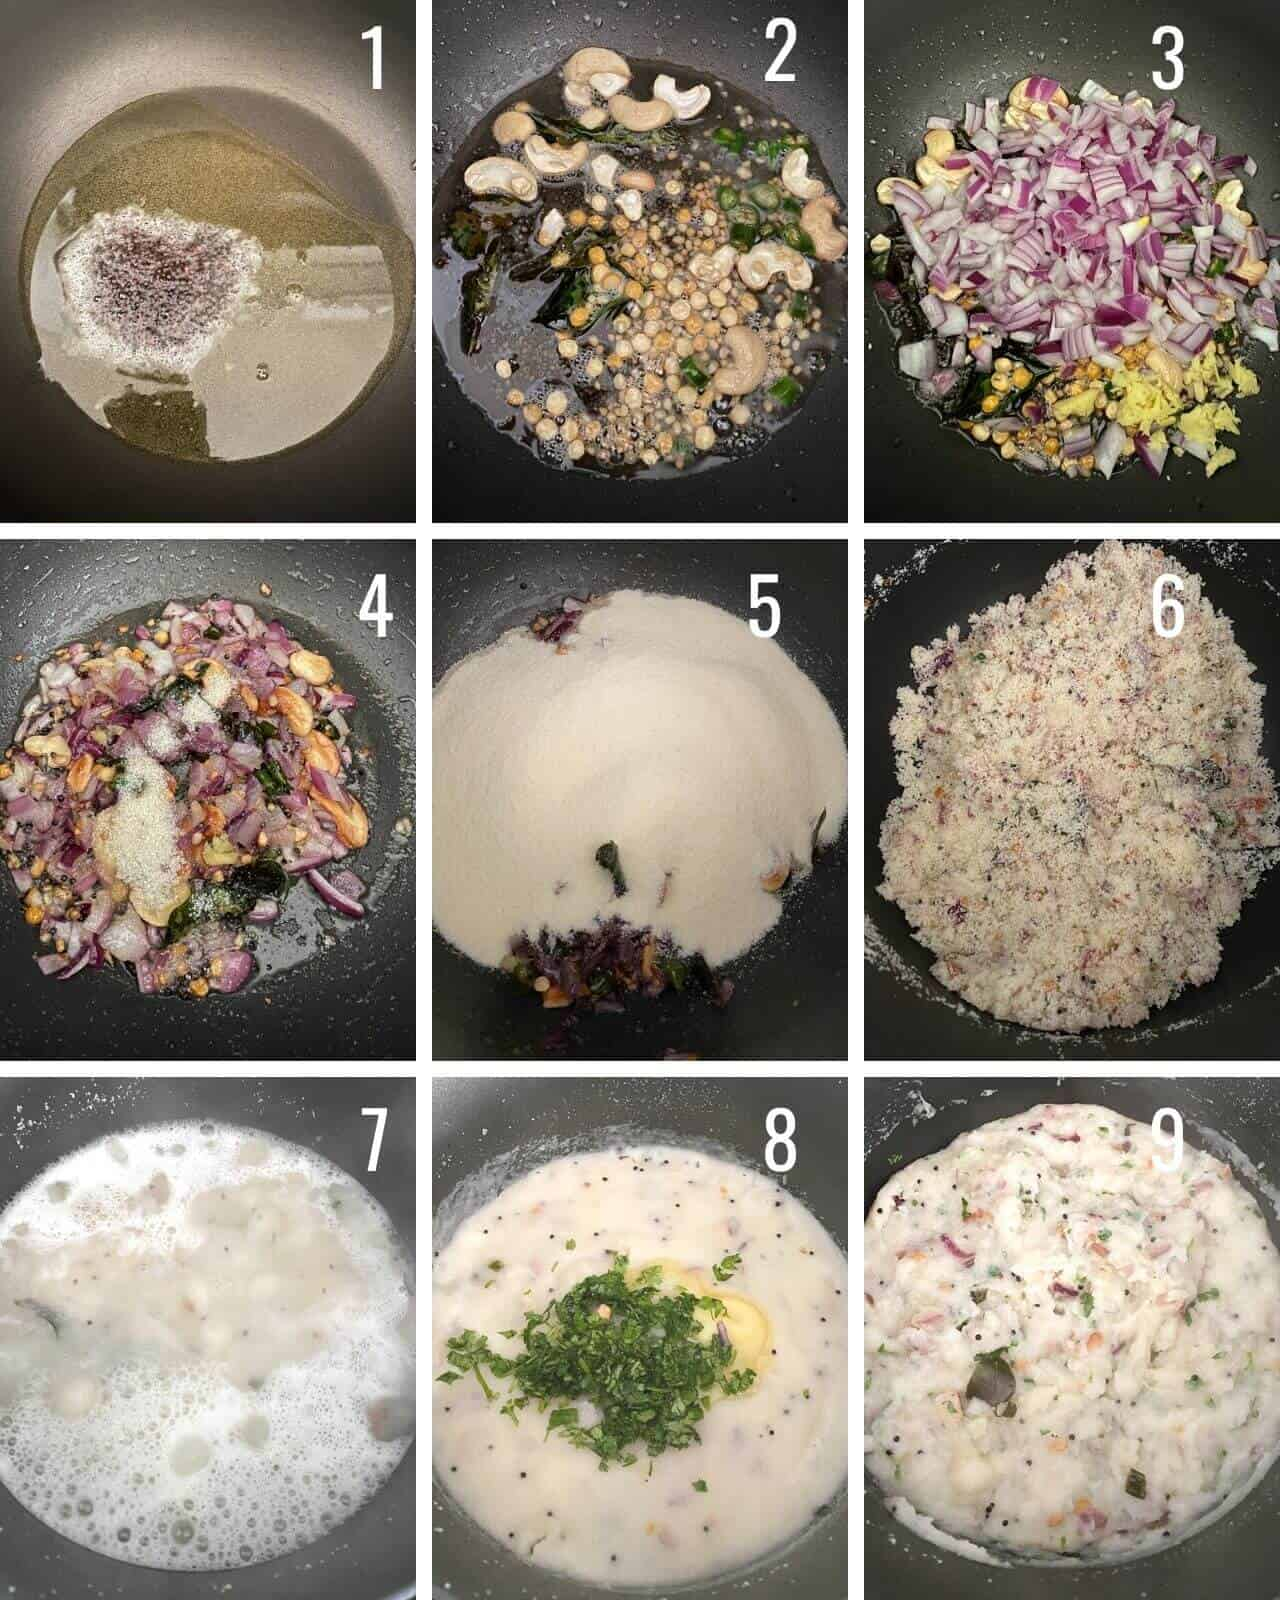 A collage of images showing how to make upma step by step